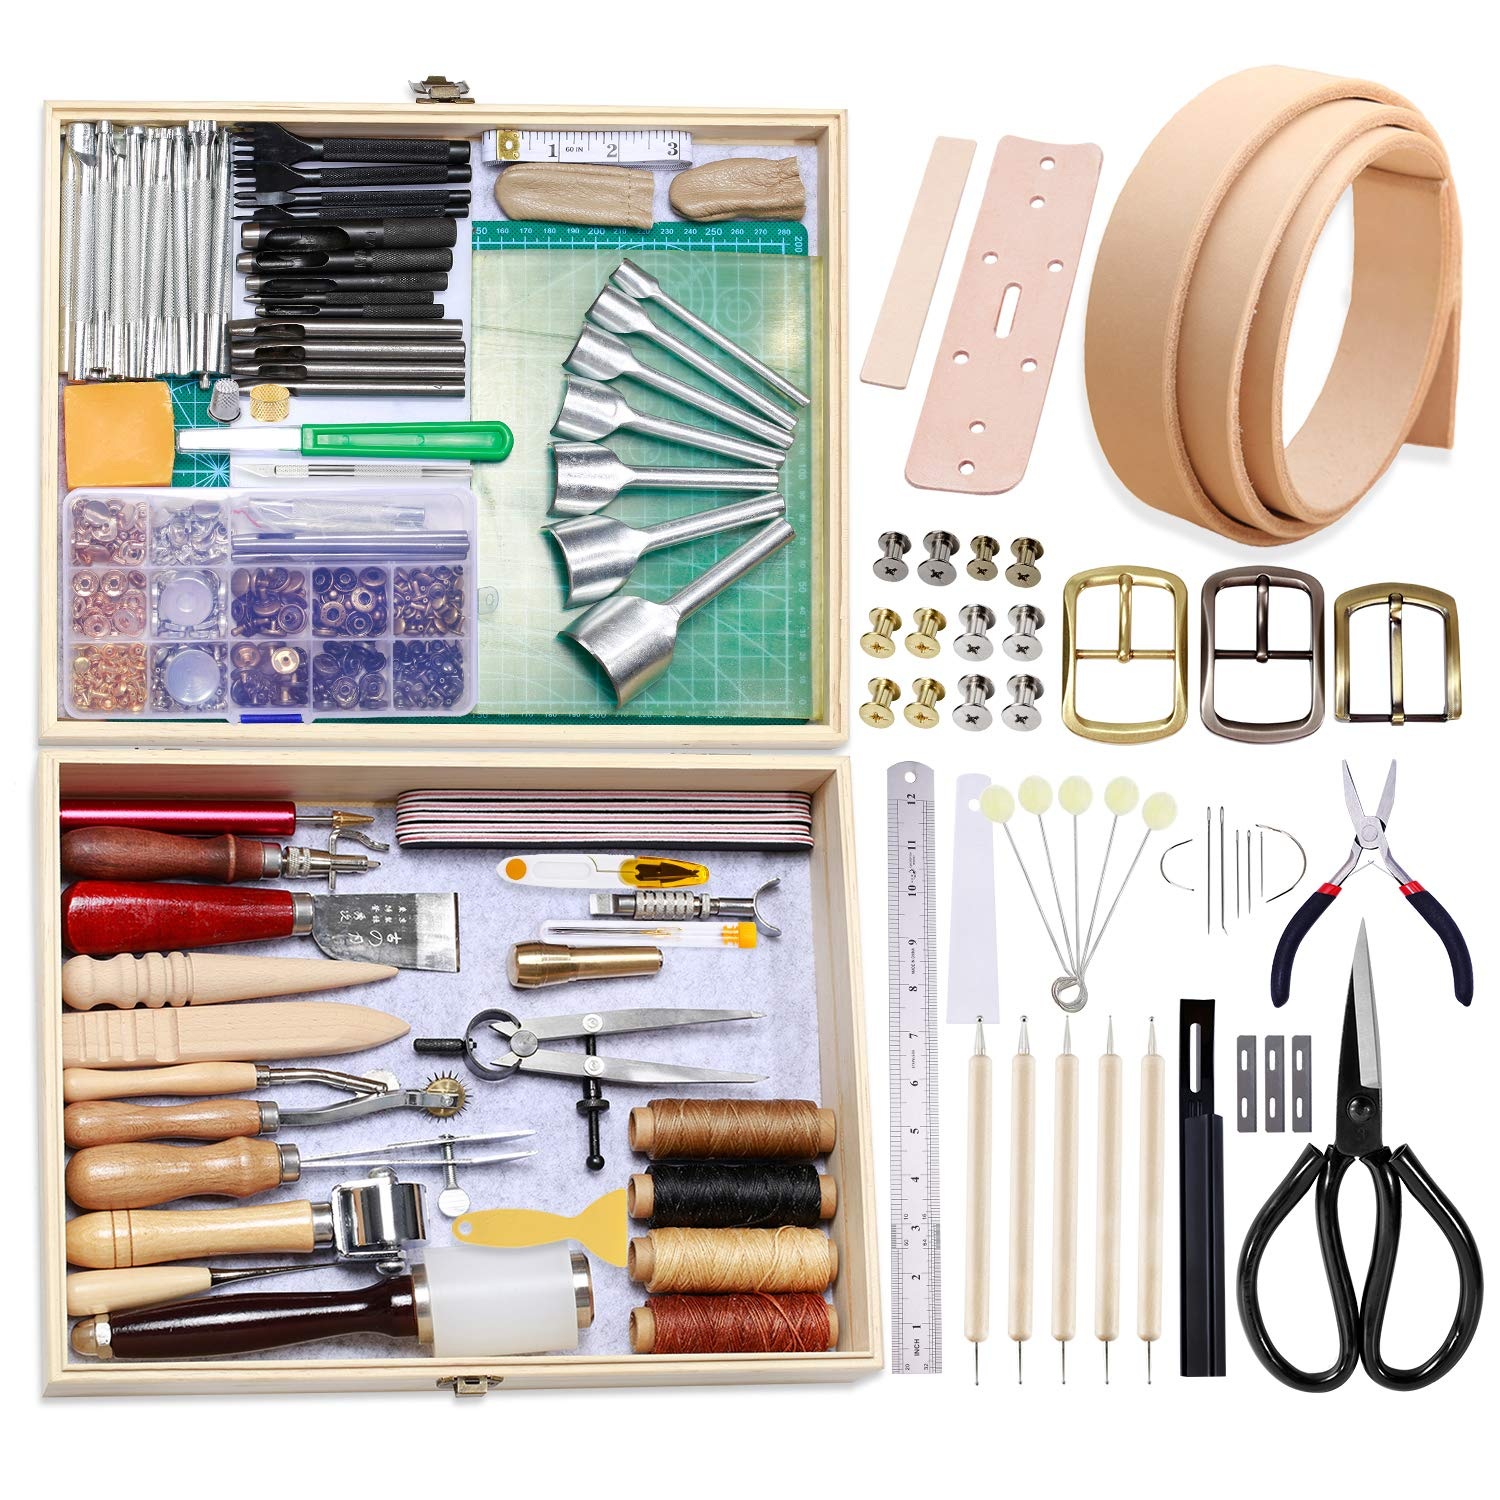 BUTUZE 489Pcs Leather Working Tools Kit with Instructions,Leather Sewing Tools Kit Leather Working Supplies with Leather Craft Stamping Tools,Gift for Hand Sewing DIY Leathercraft Carving